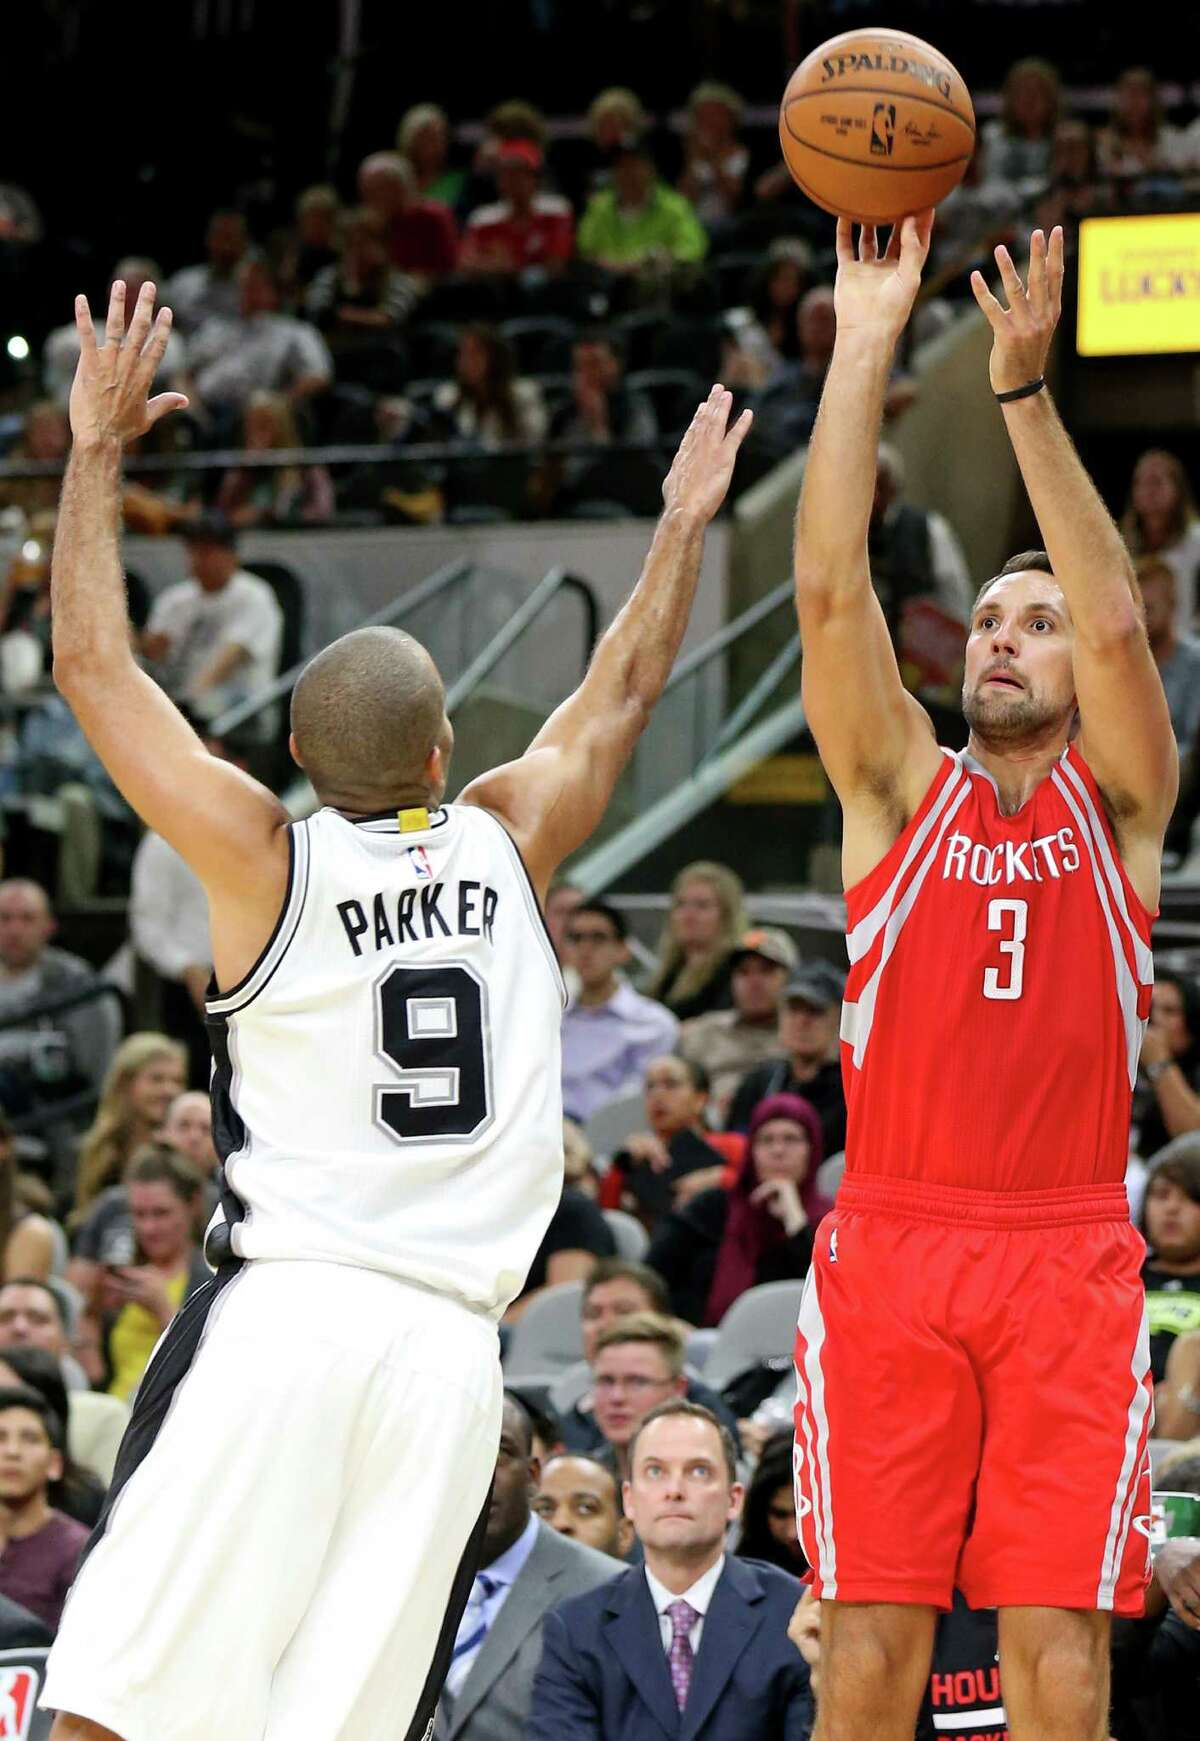 The Rockets' Ryan Anderson's stock in trade is his shooting, but he has shown the ability to work well on the offensive glass.